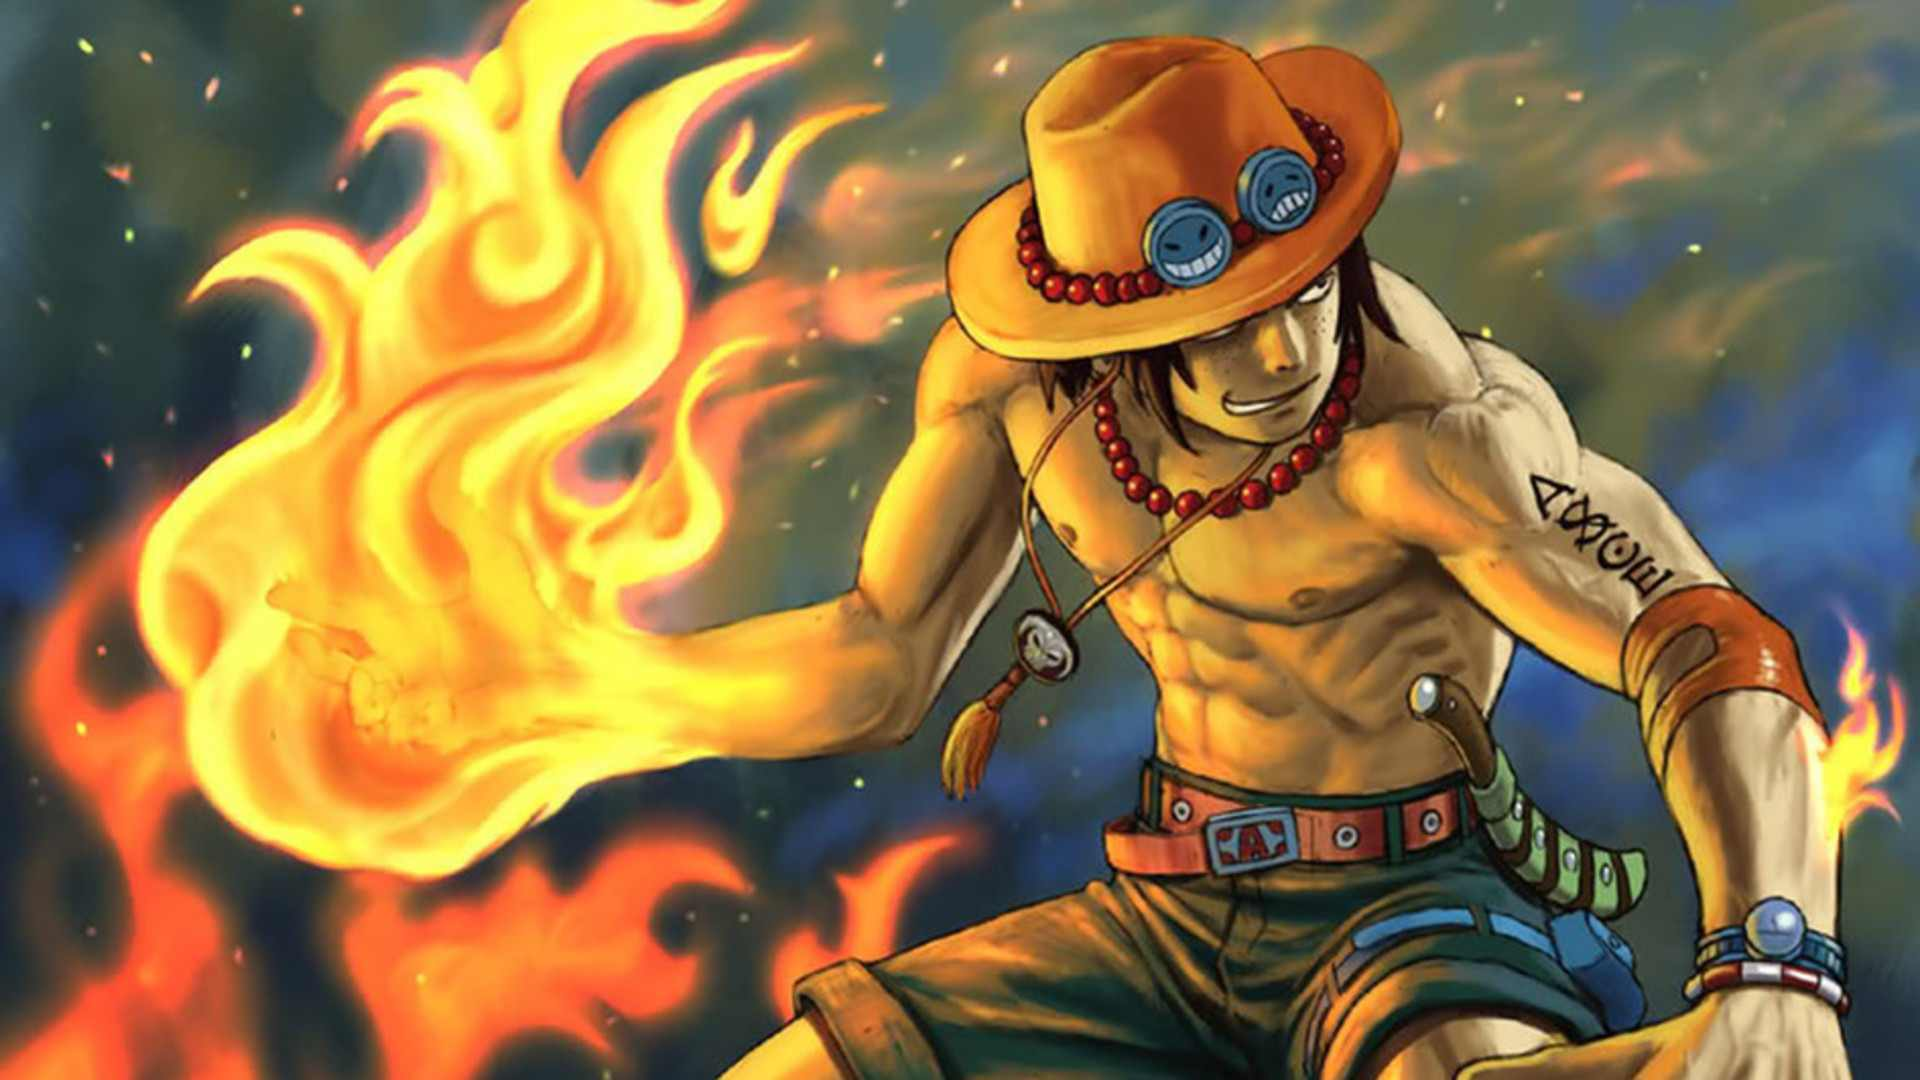 One piece ace iphone wallpaper